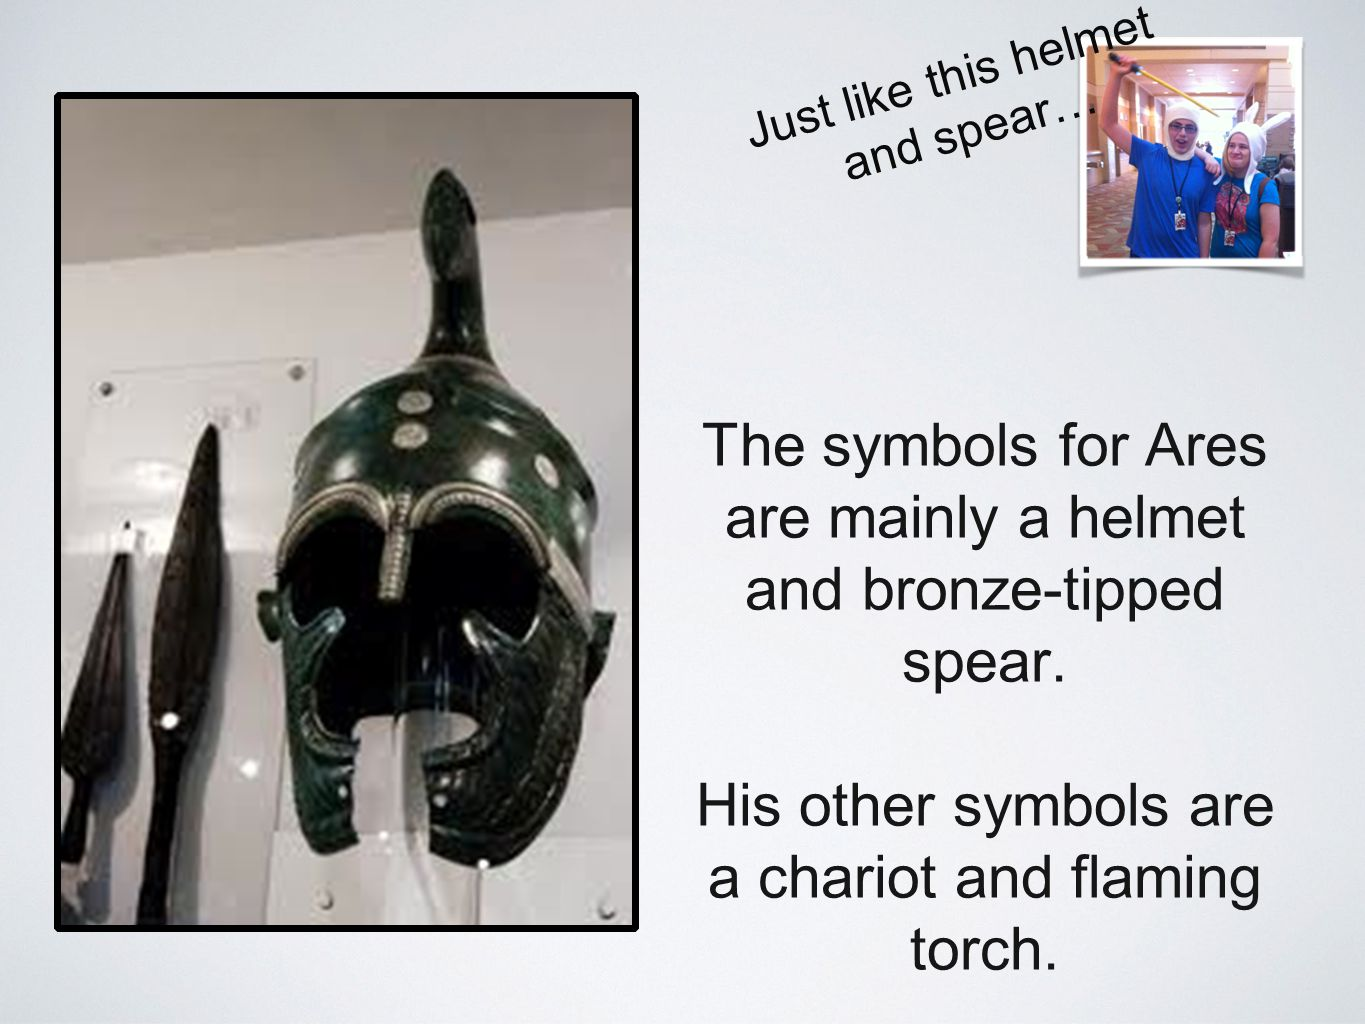 The symbols for Ares are mainly a helmet and bronze-tipped spear.